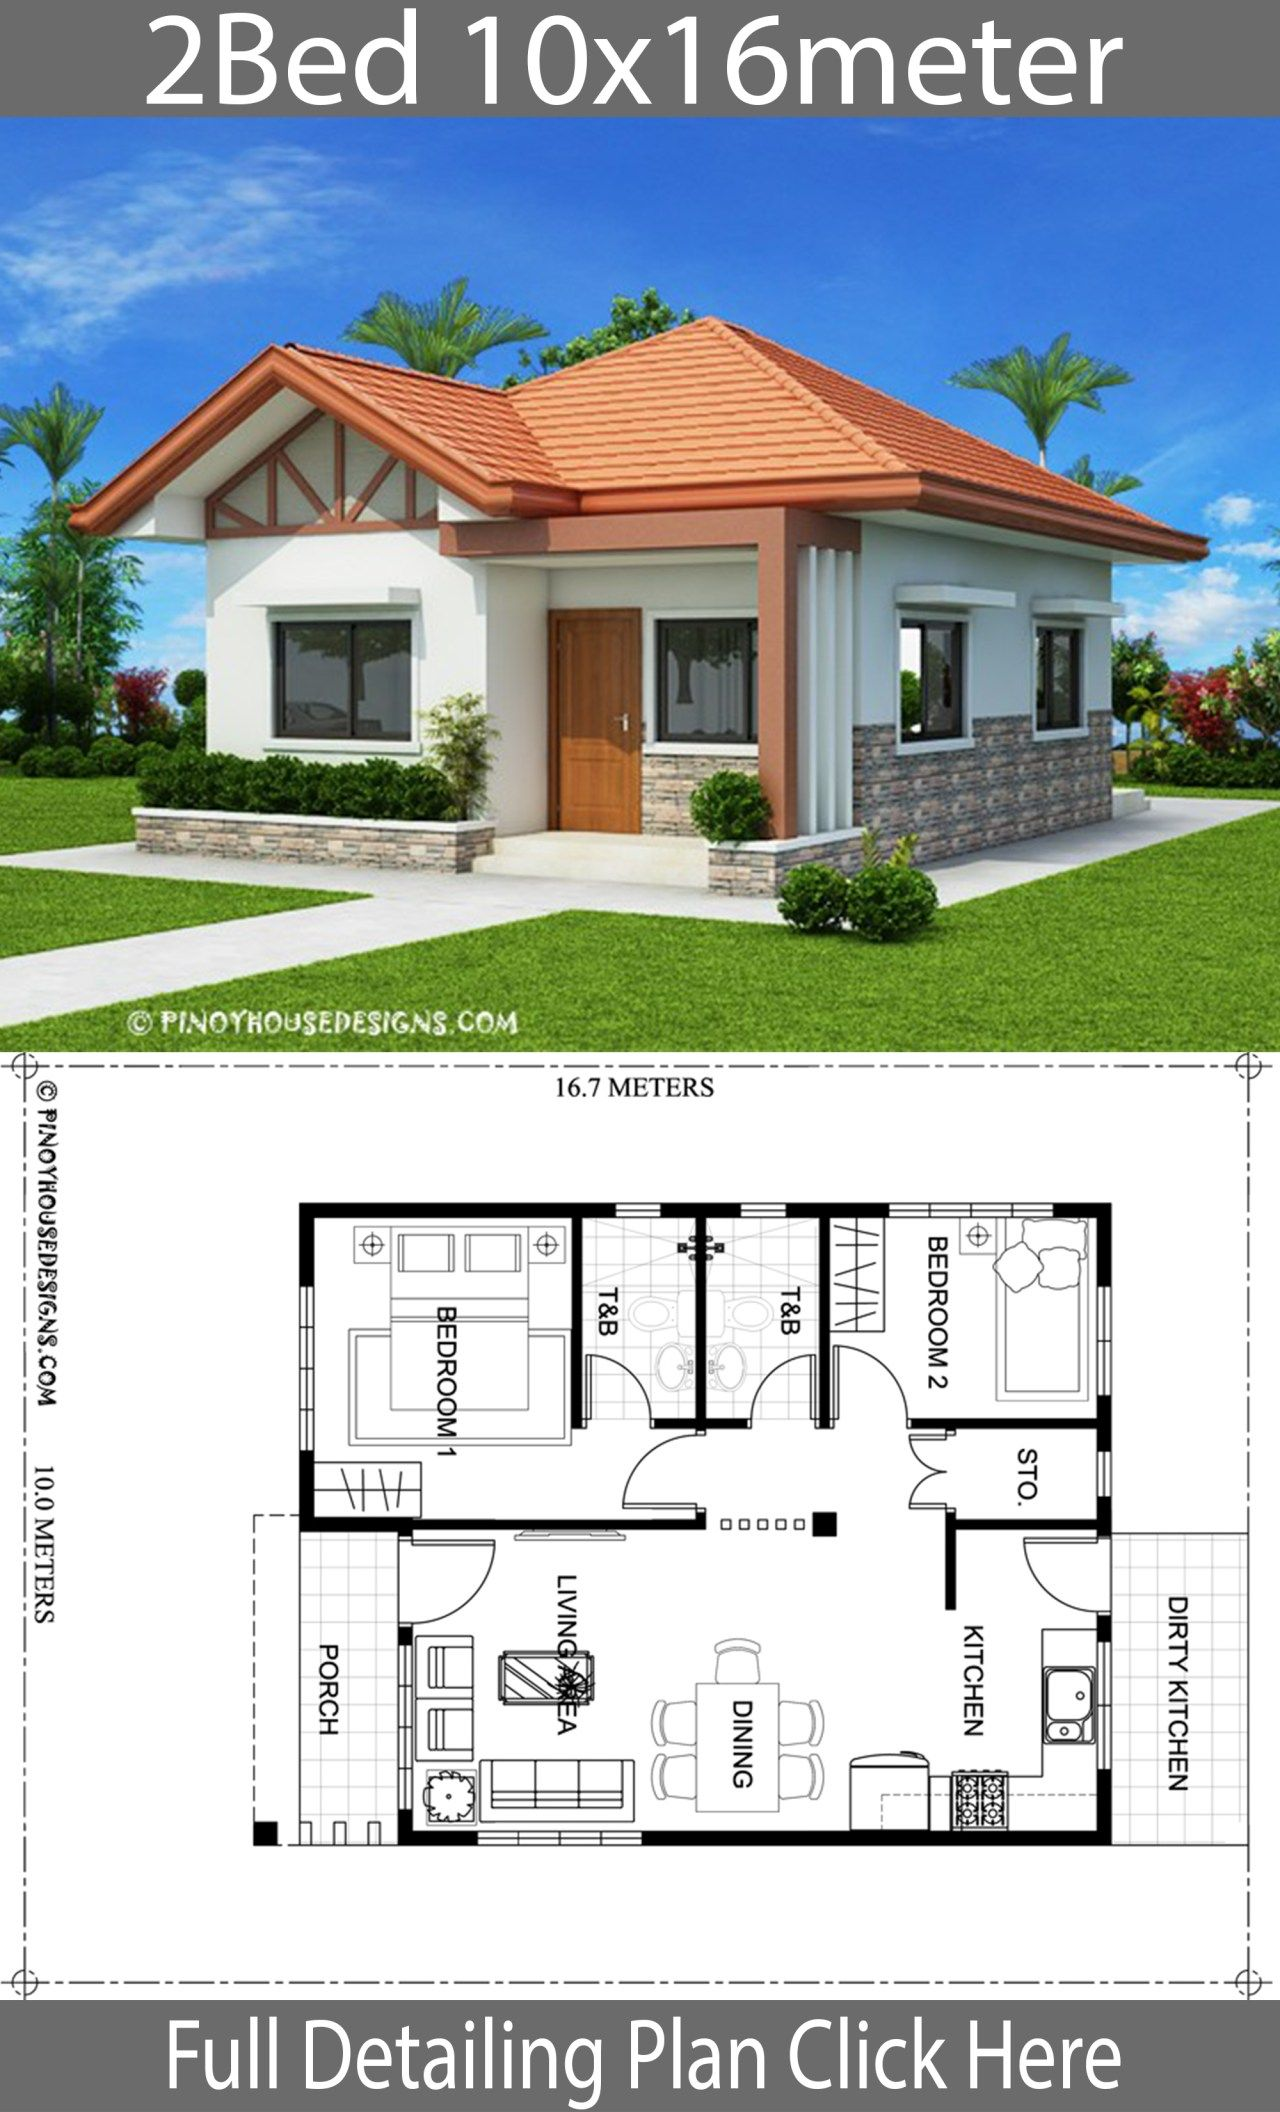 Home Design Plan 10x16m With 2 Bedrooms Home Ideas Affordable House Plans House Plans Small House Design Plans